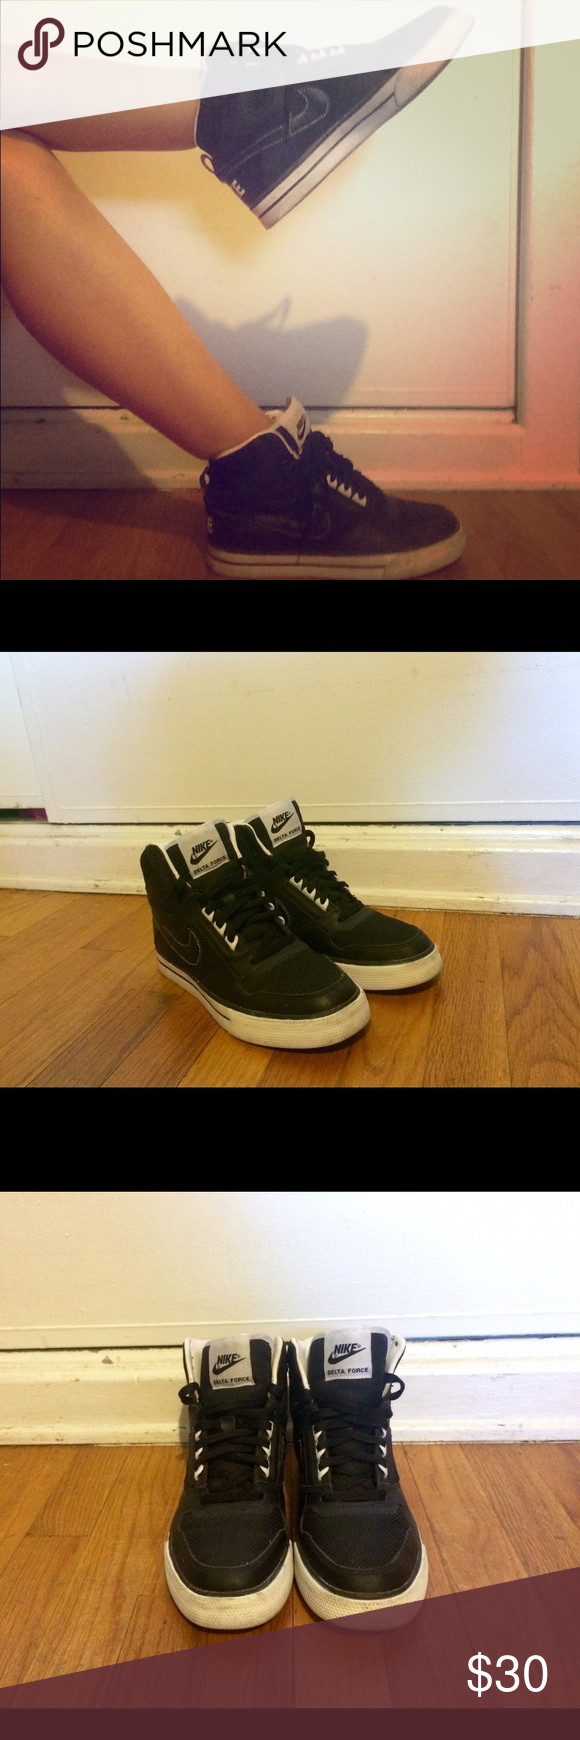 Black Nike Air Delta Force sneakers Nike Air Delta Force shoes. Women's size 7.5 tag says 6.5. Great condition, like new. Nike Shoes Sneakers